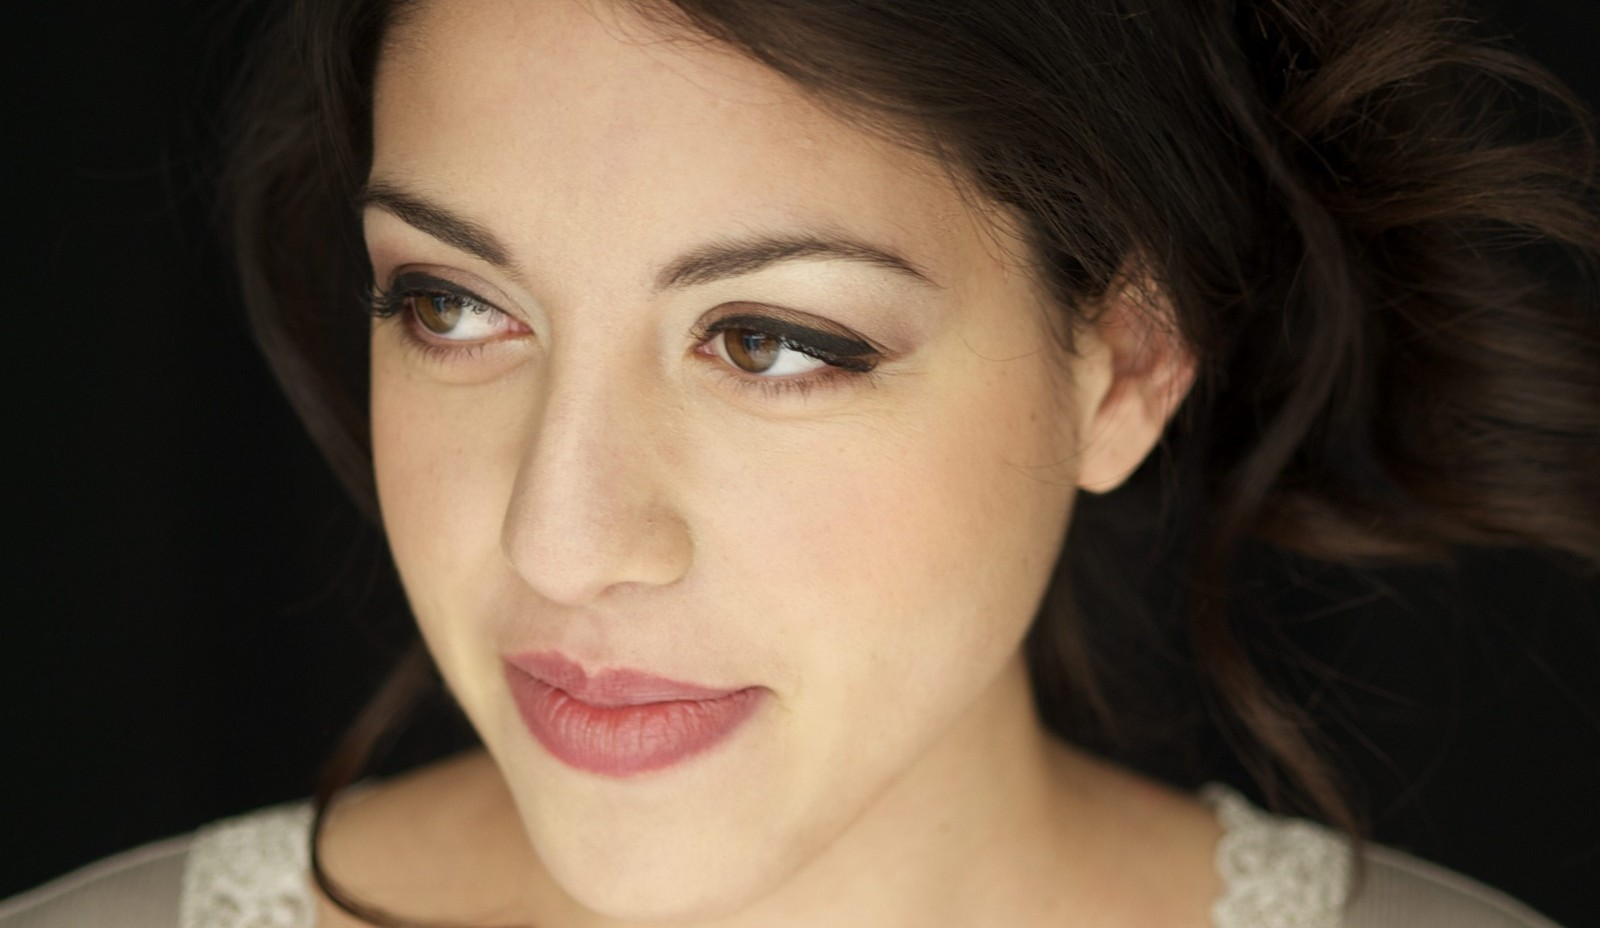 Pianist Beatrice Rana will play a daring program with the Buffalo Philharmonic Orchestra.